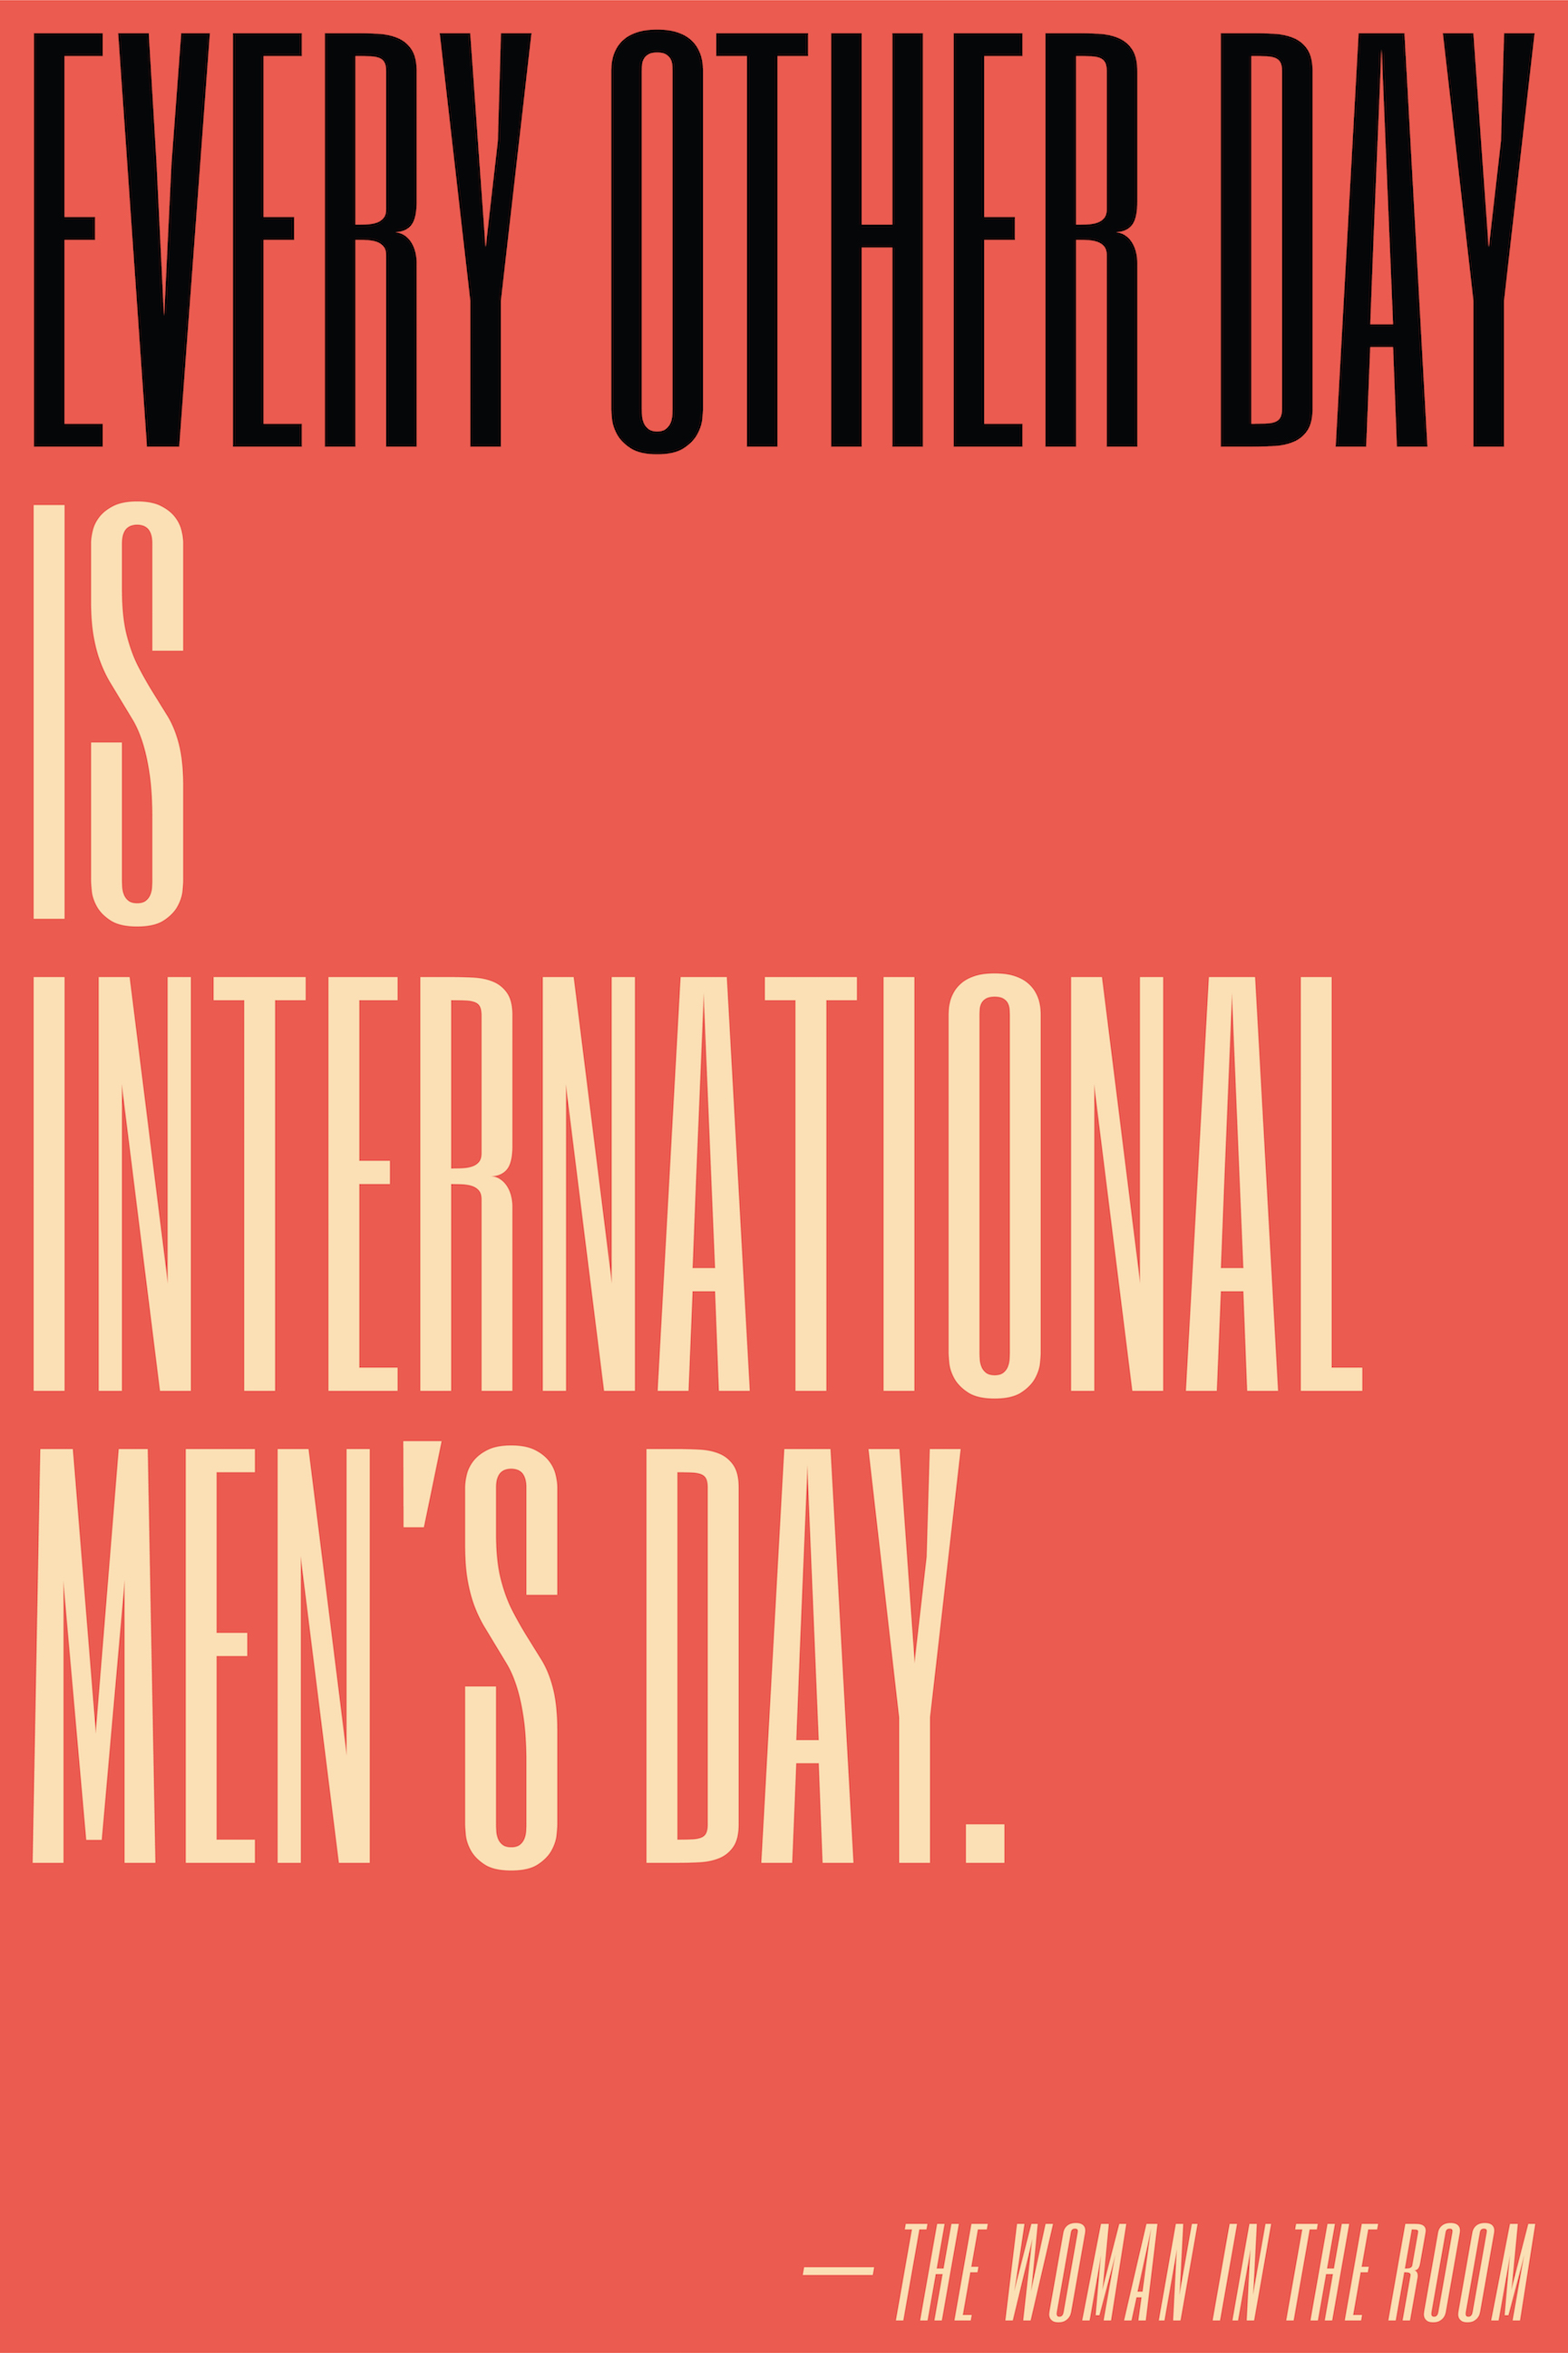 Every other day is International Men's Day.